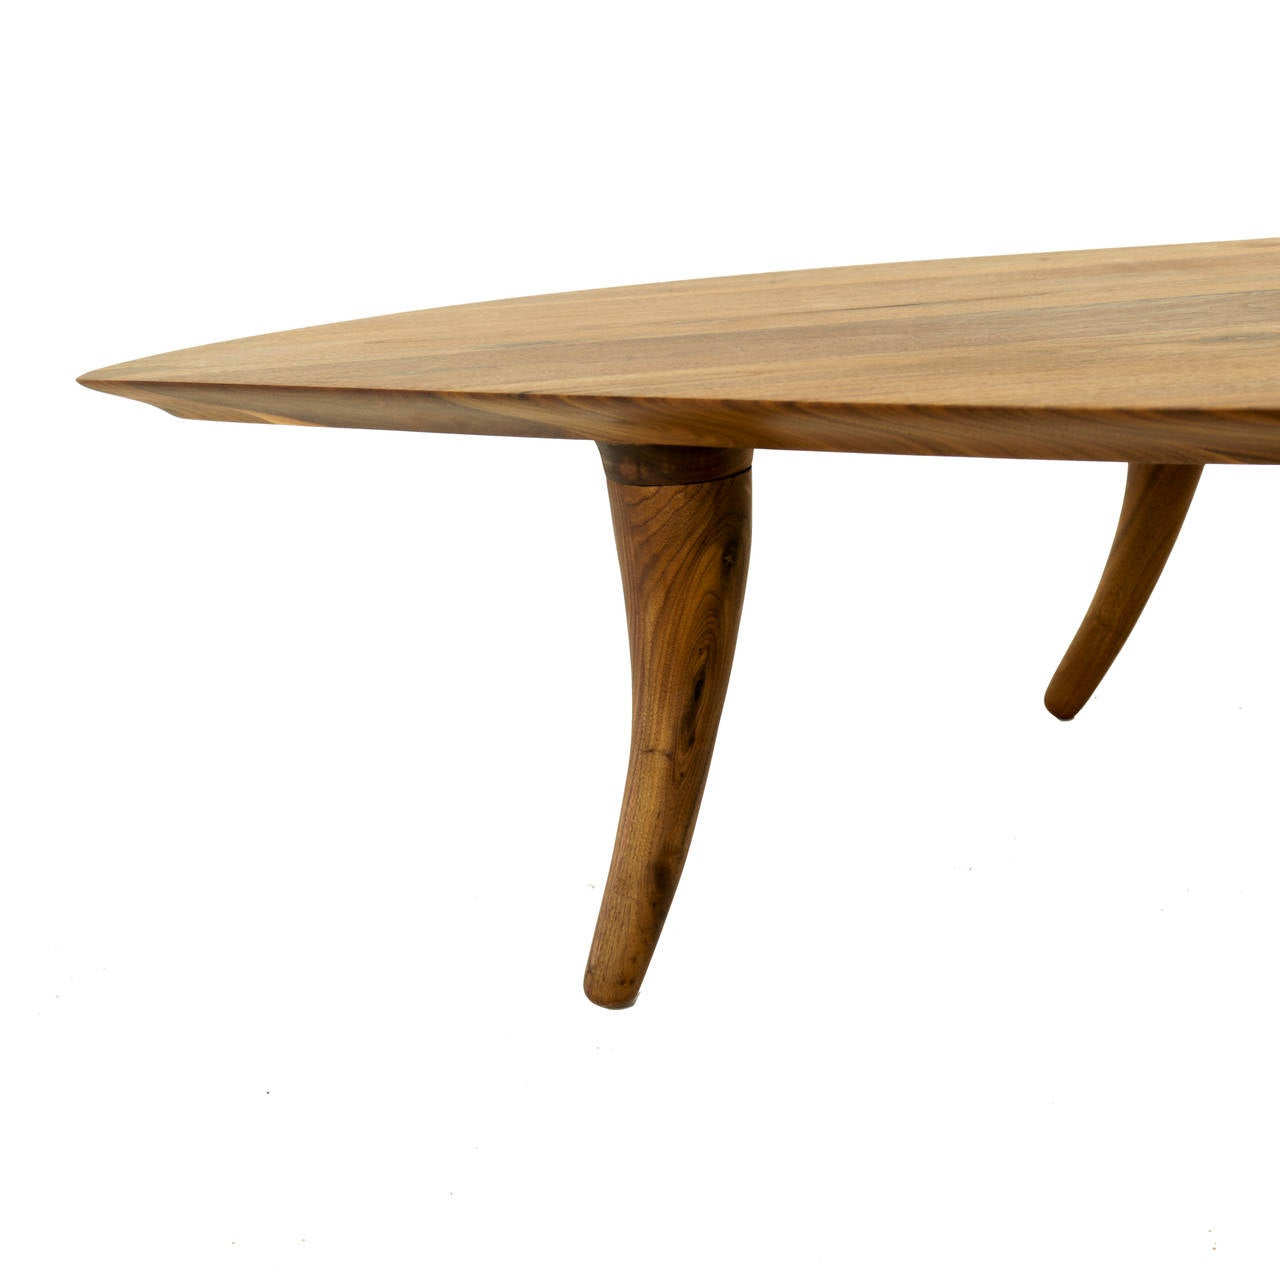 Sculptural walnut coffee table with curved legs at 1stdibs for Center table legs